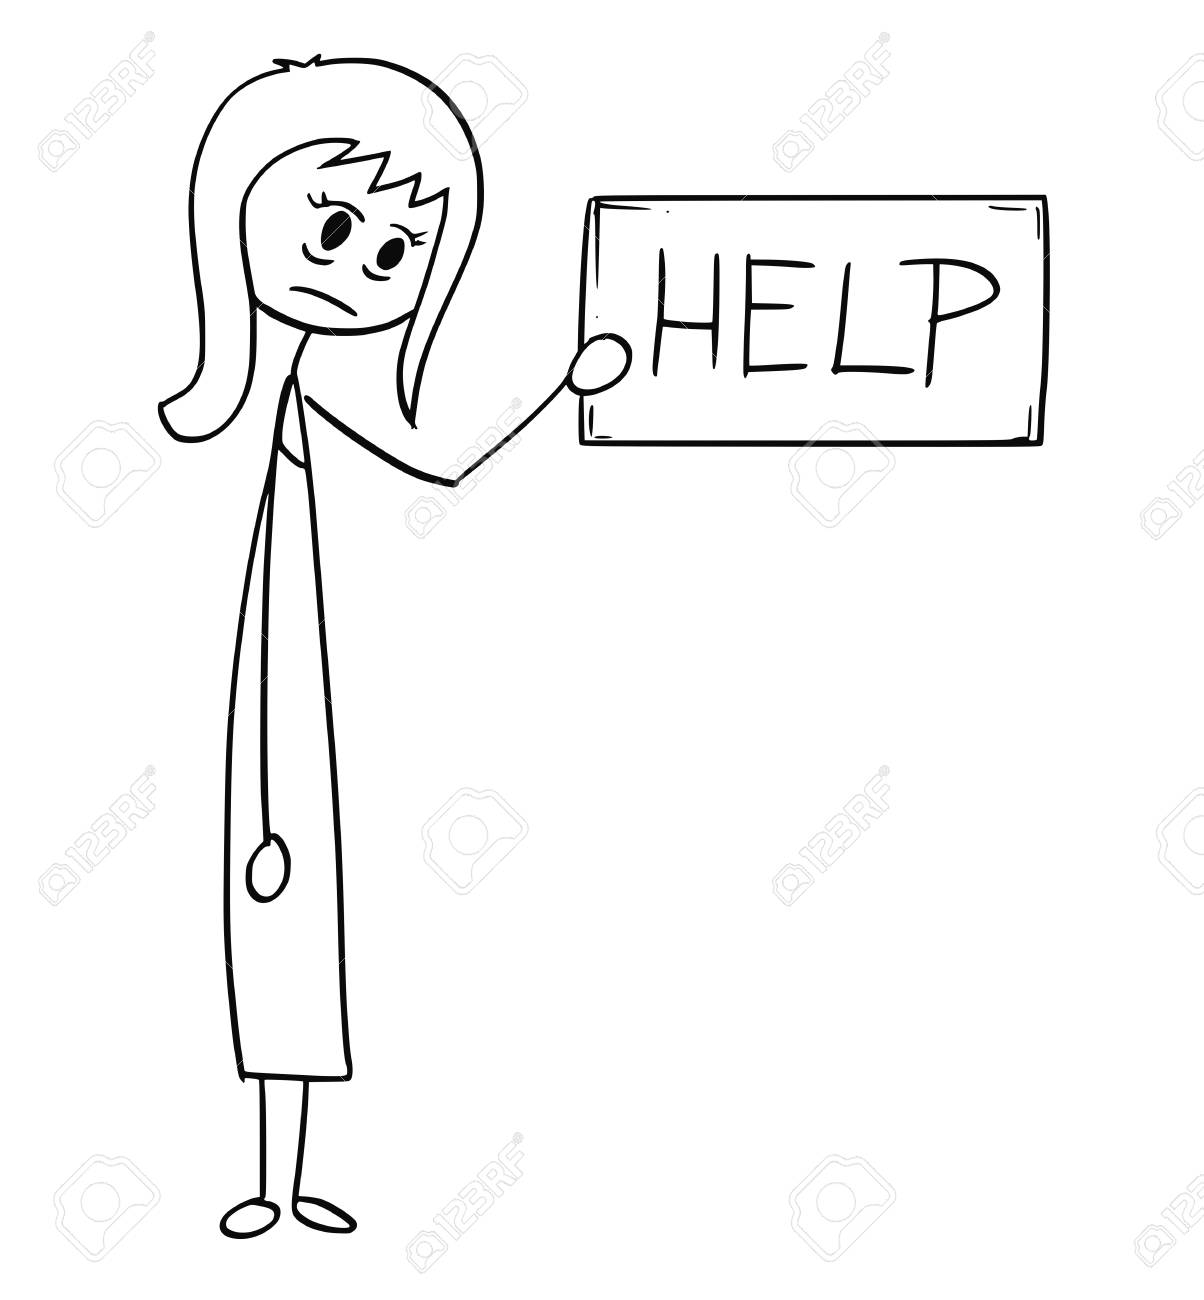 Cartoon stick man drawing conceptual illustration of depressed or tired businesswoman or woman holding help text sign. Business concept of exhaustion and tiredness. - 93927103